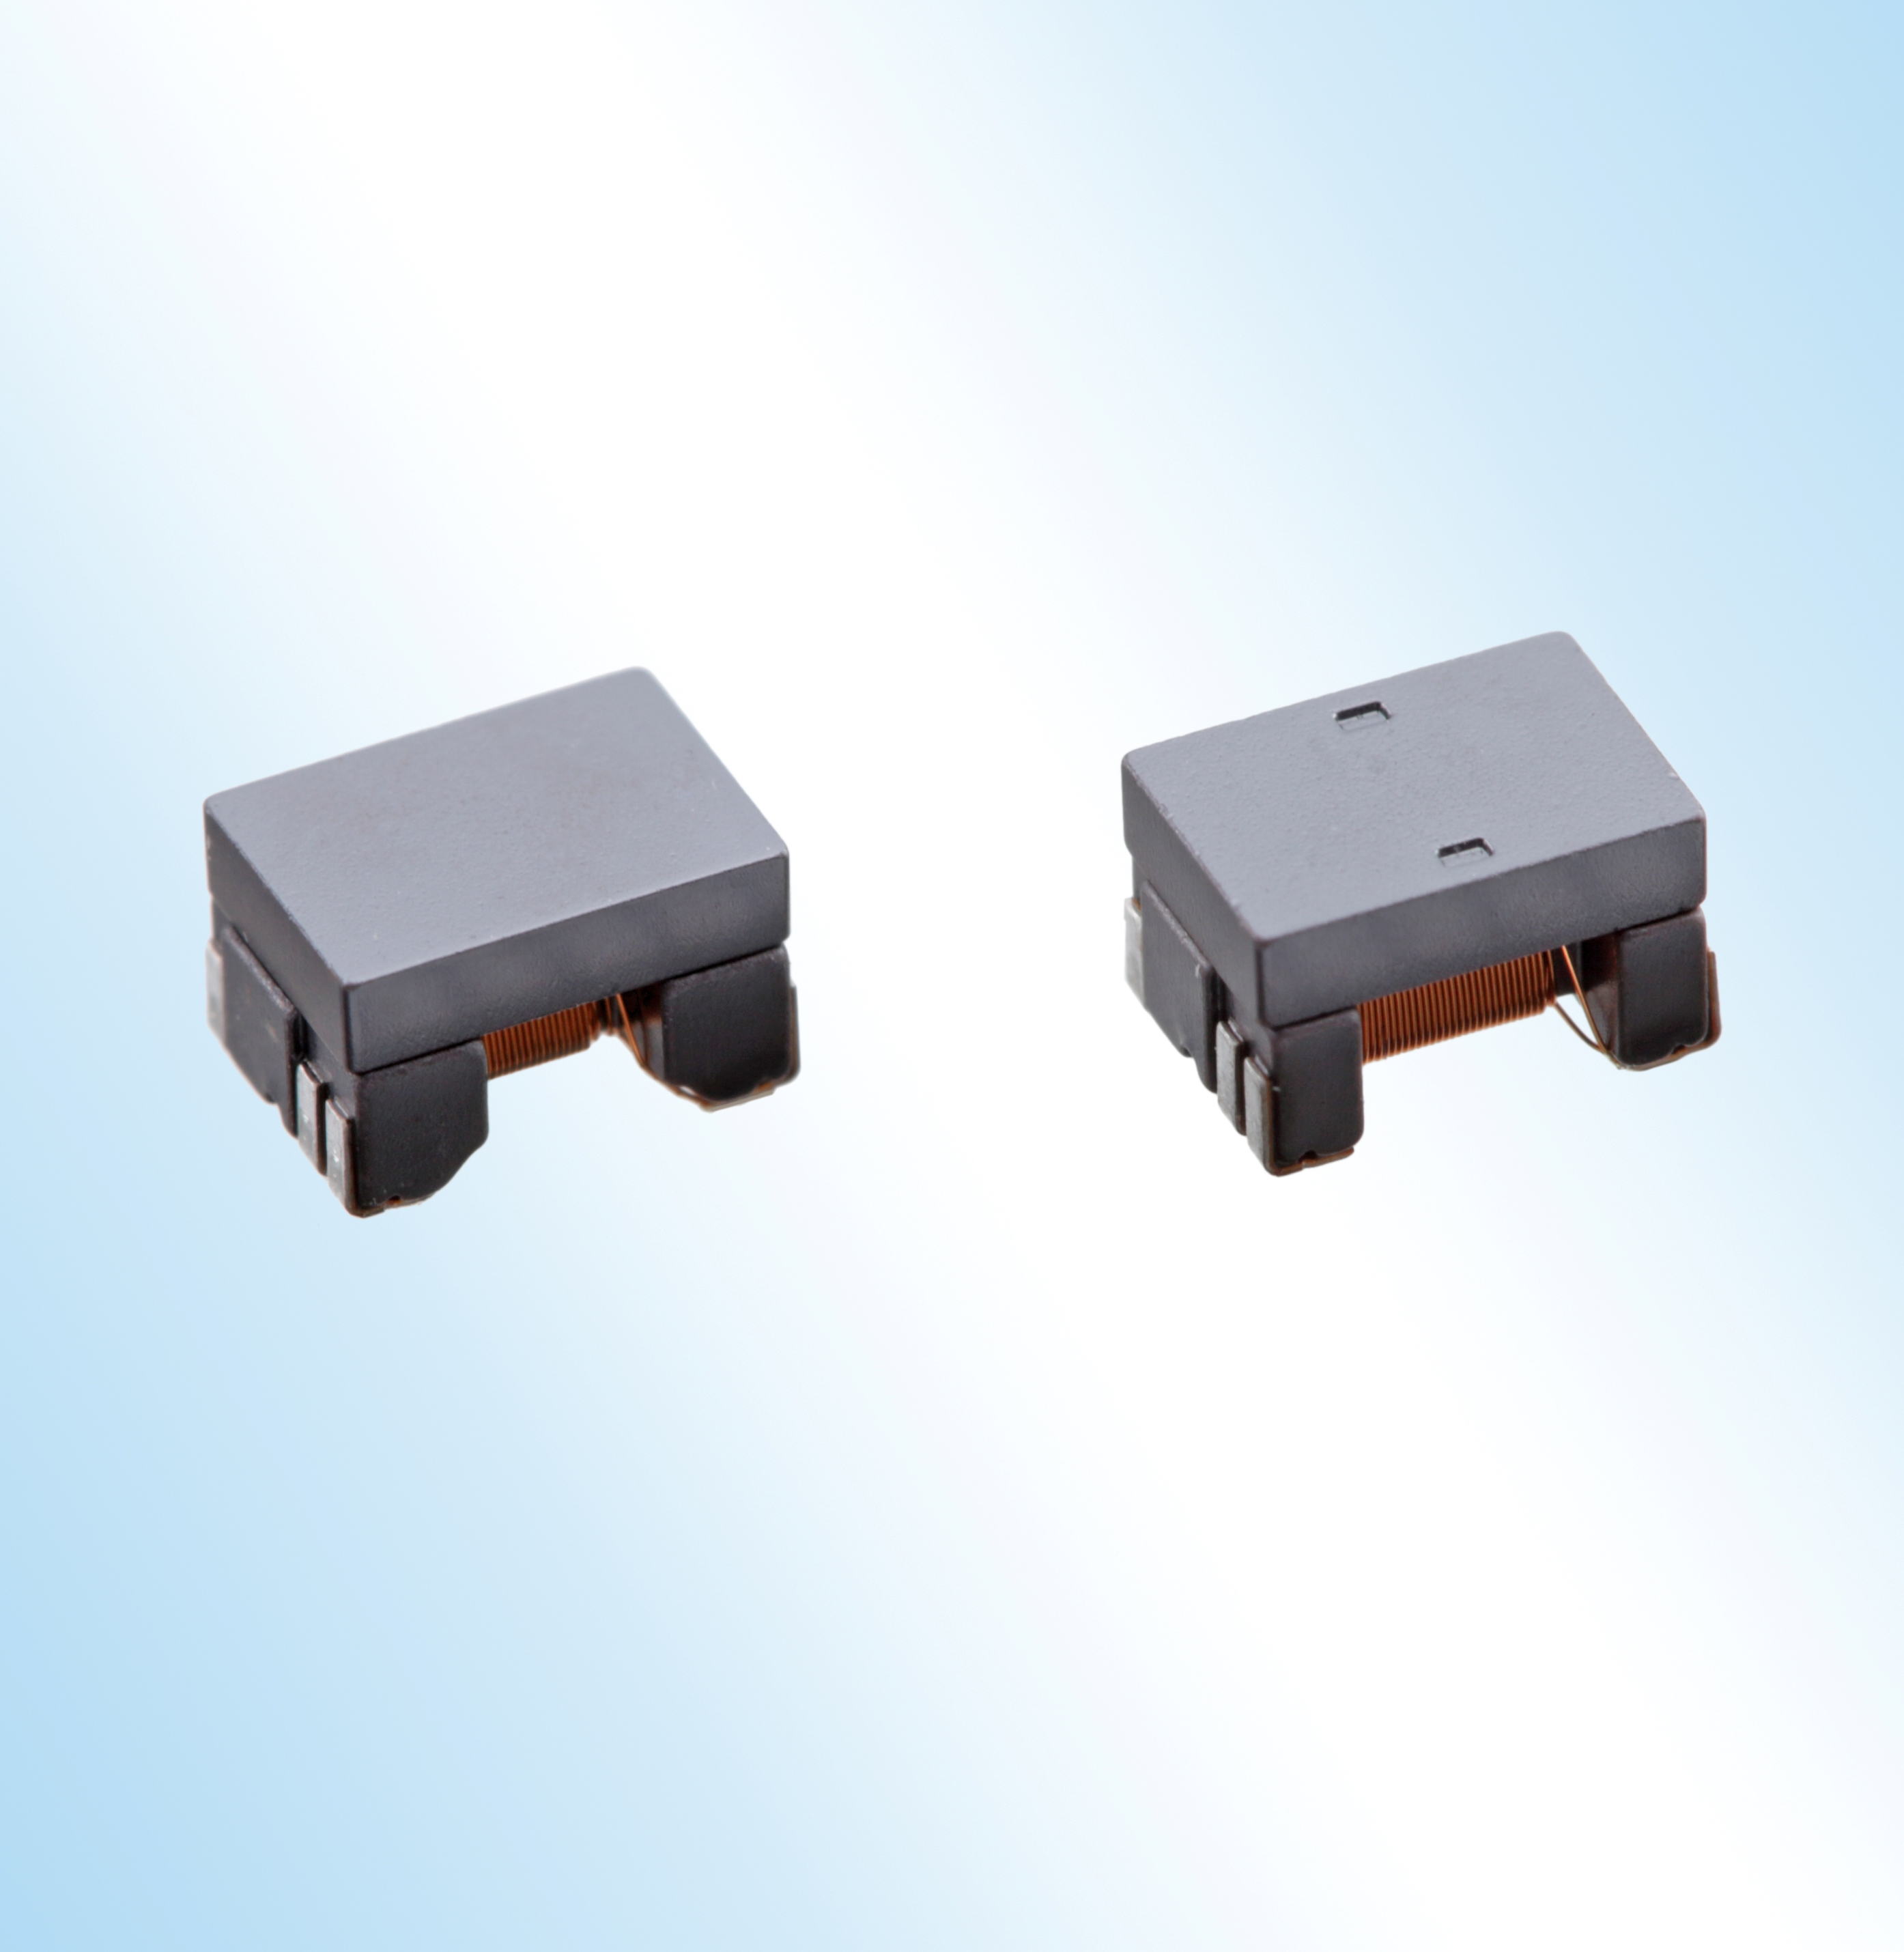 SMD Pulse Transformers Designed for Gigabit Ethernet and PoE Applications